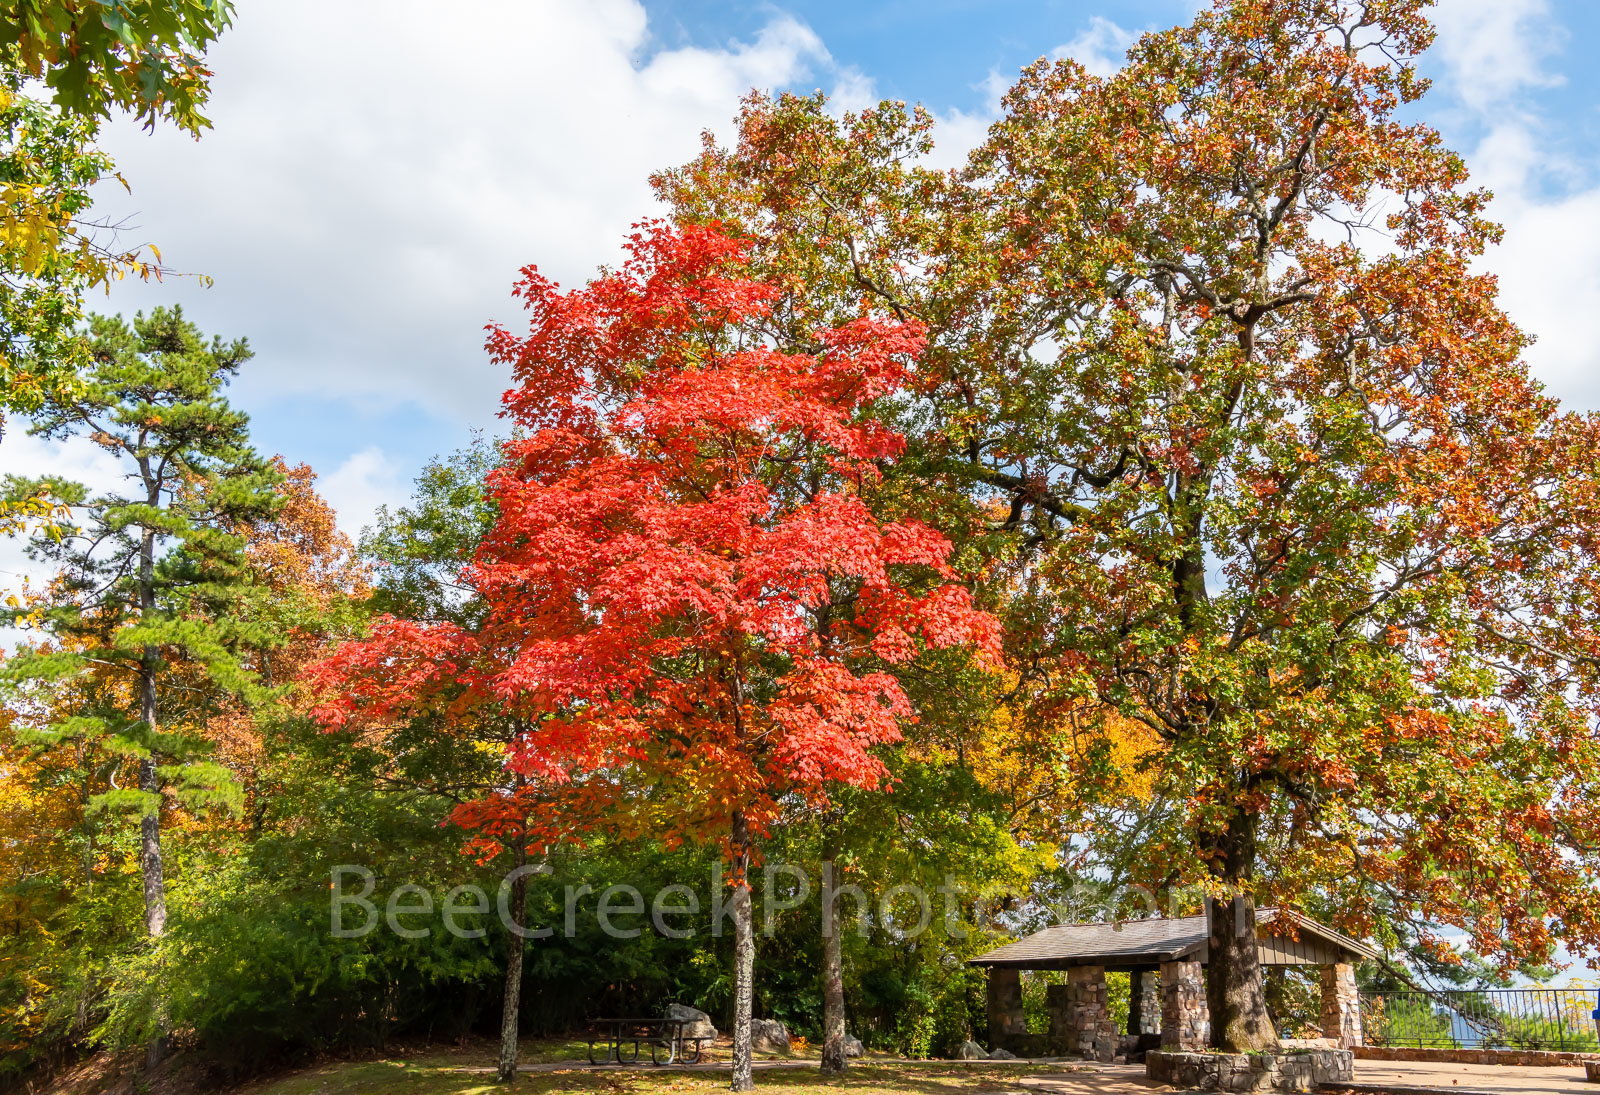 Hot Springs, color, fall, trees, hillside, autumn, maple tree, fall maples, overlook, arkansas, National Park,, photo